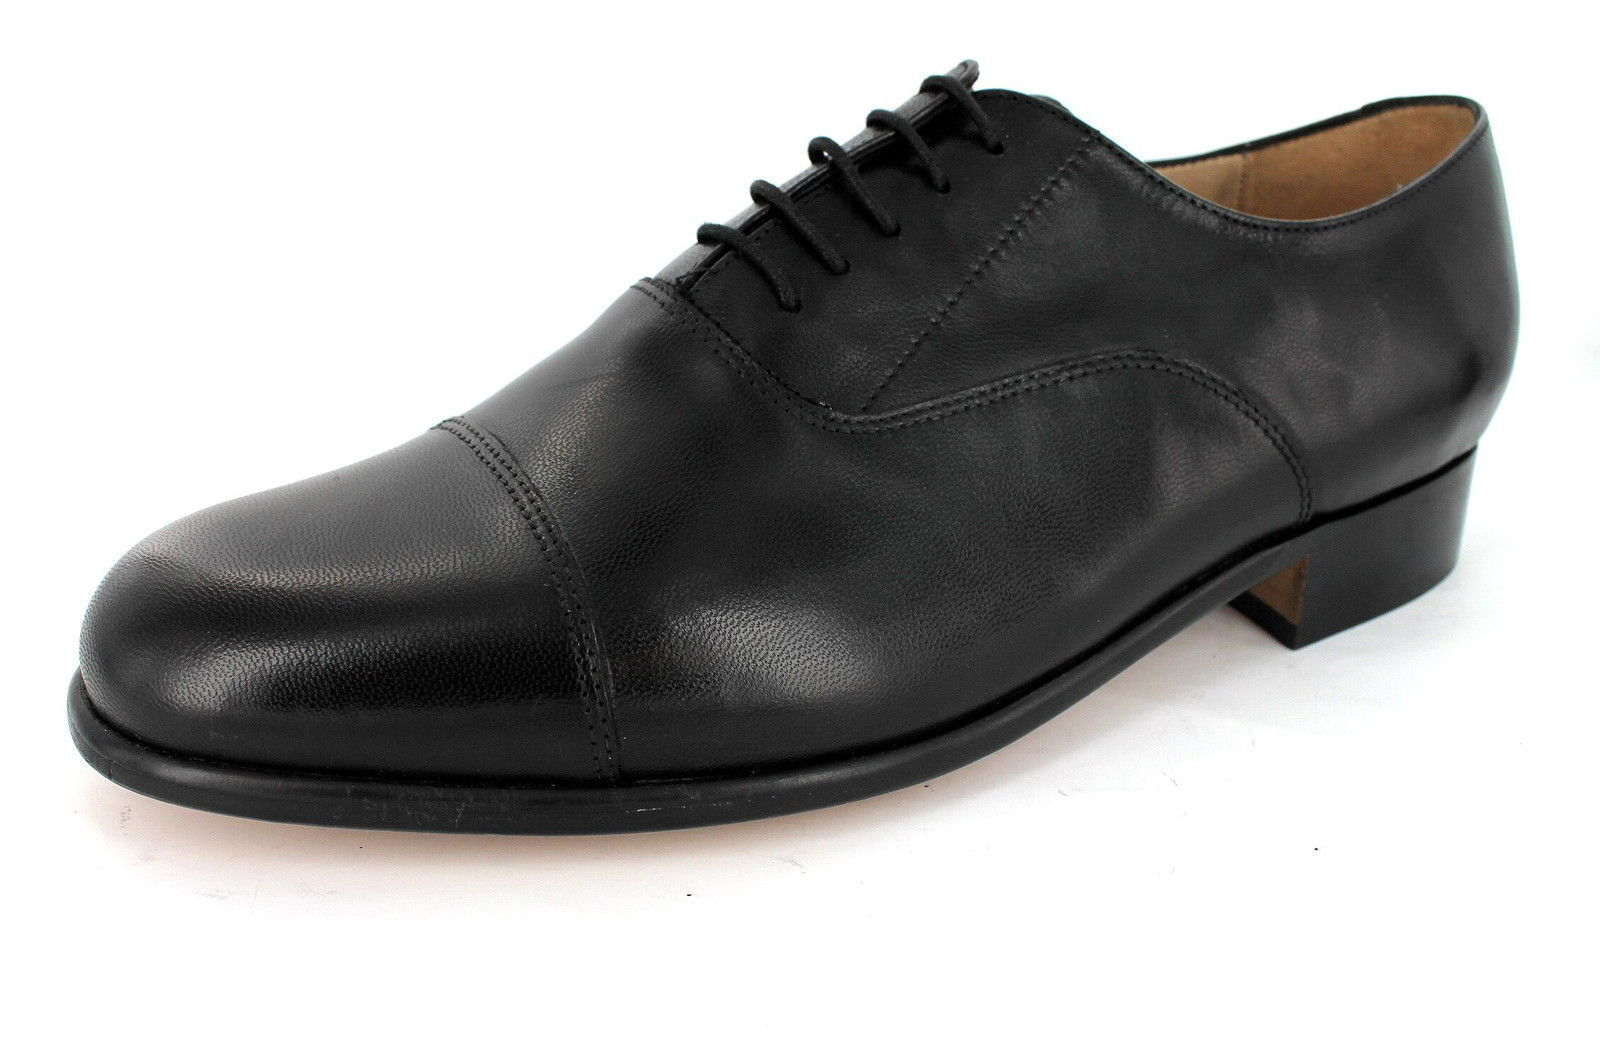 Thomas bluent 'Paddington 2' Gents Black Leather Bench Made Cap Toe Formal shoes